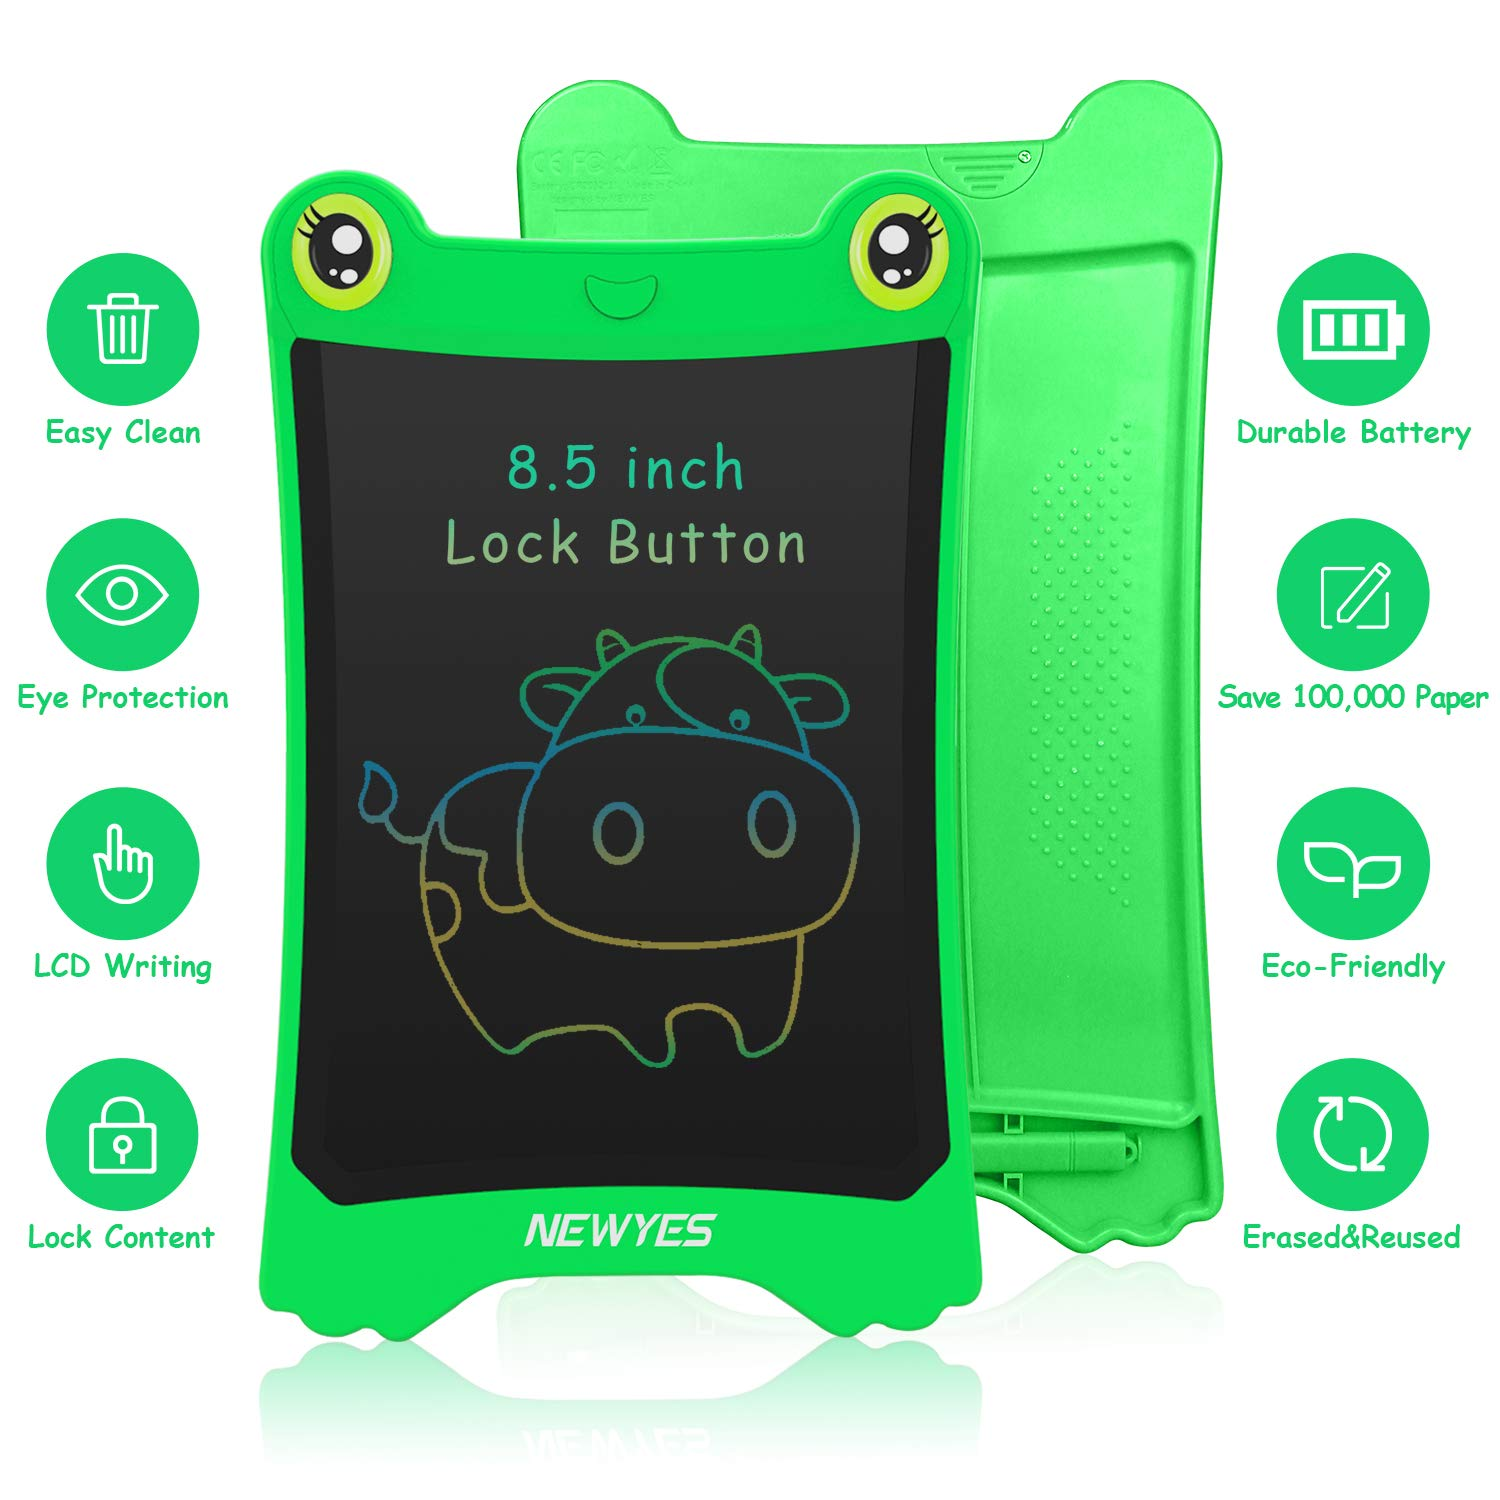 WOBEECO LCD Writing Tablet, 8.5 Inch Electronic Writing Board Doodle and Scribble Board for Kids (Green) by WOBEECO (Image #3)